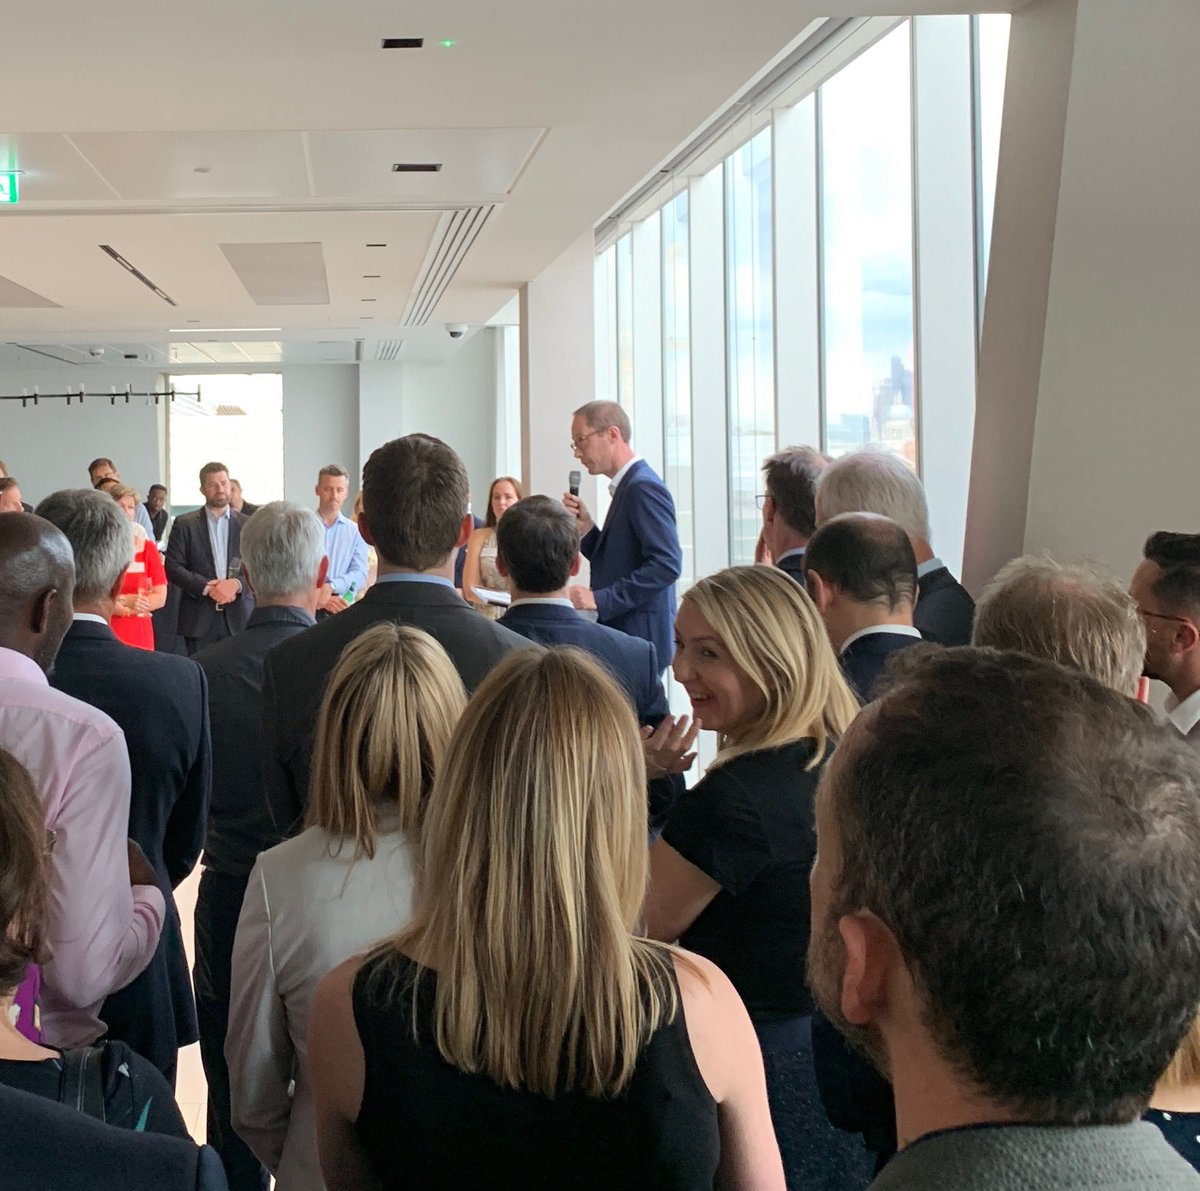 James Cooksey, head of Central London @thecrownestate summer party thanks suppliers and explains why innovation and sticking close to customers is the only option for their business #customerexperience